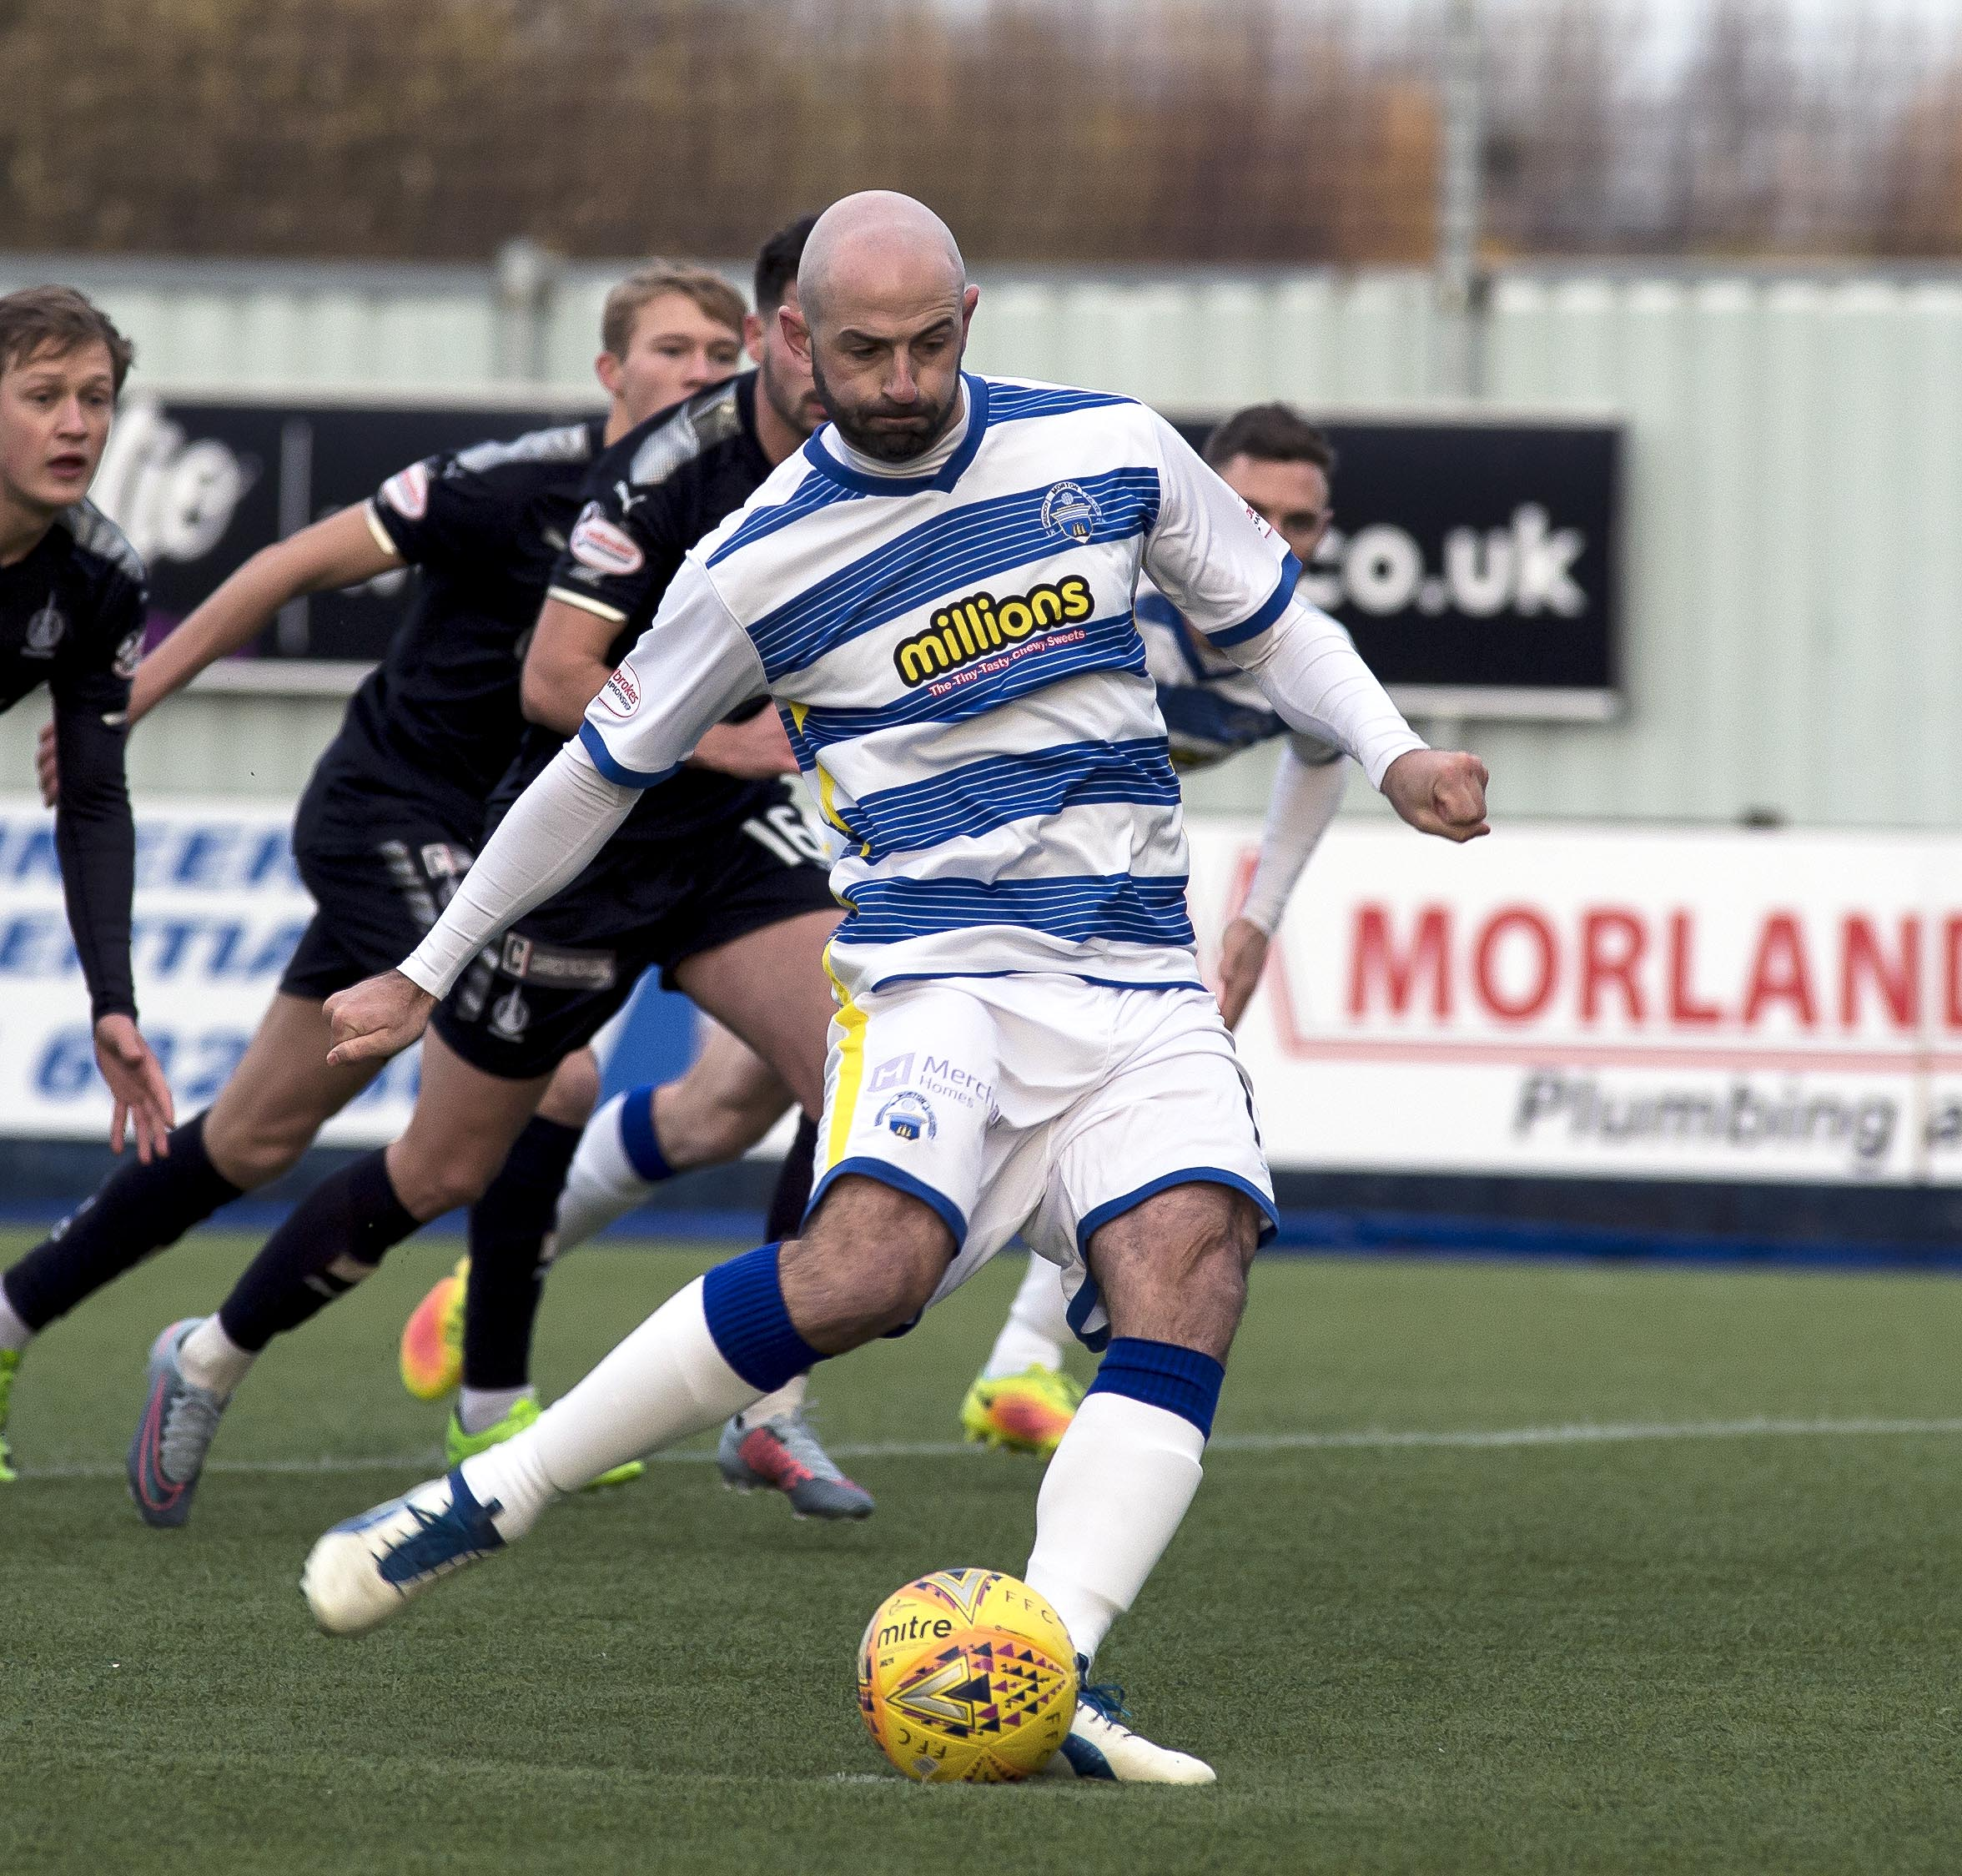 Morton midfielder Harkins happy with penalty duties